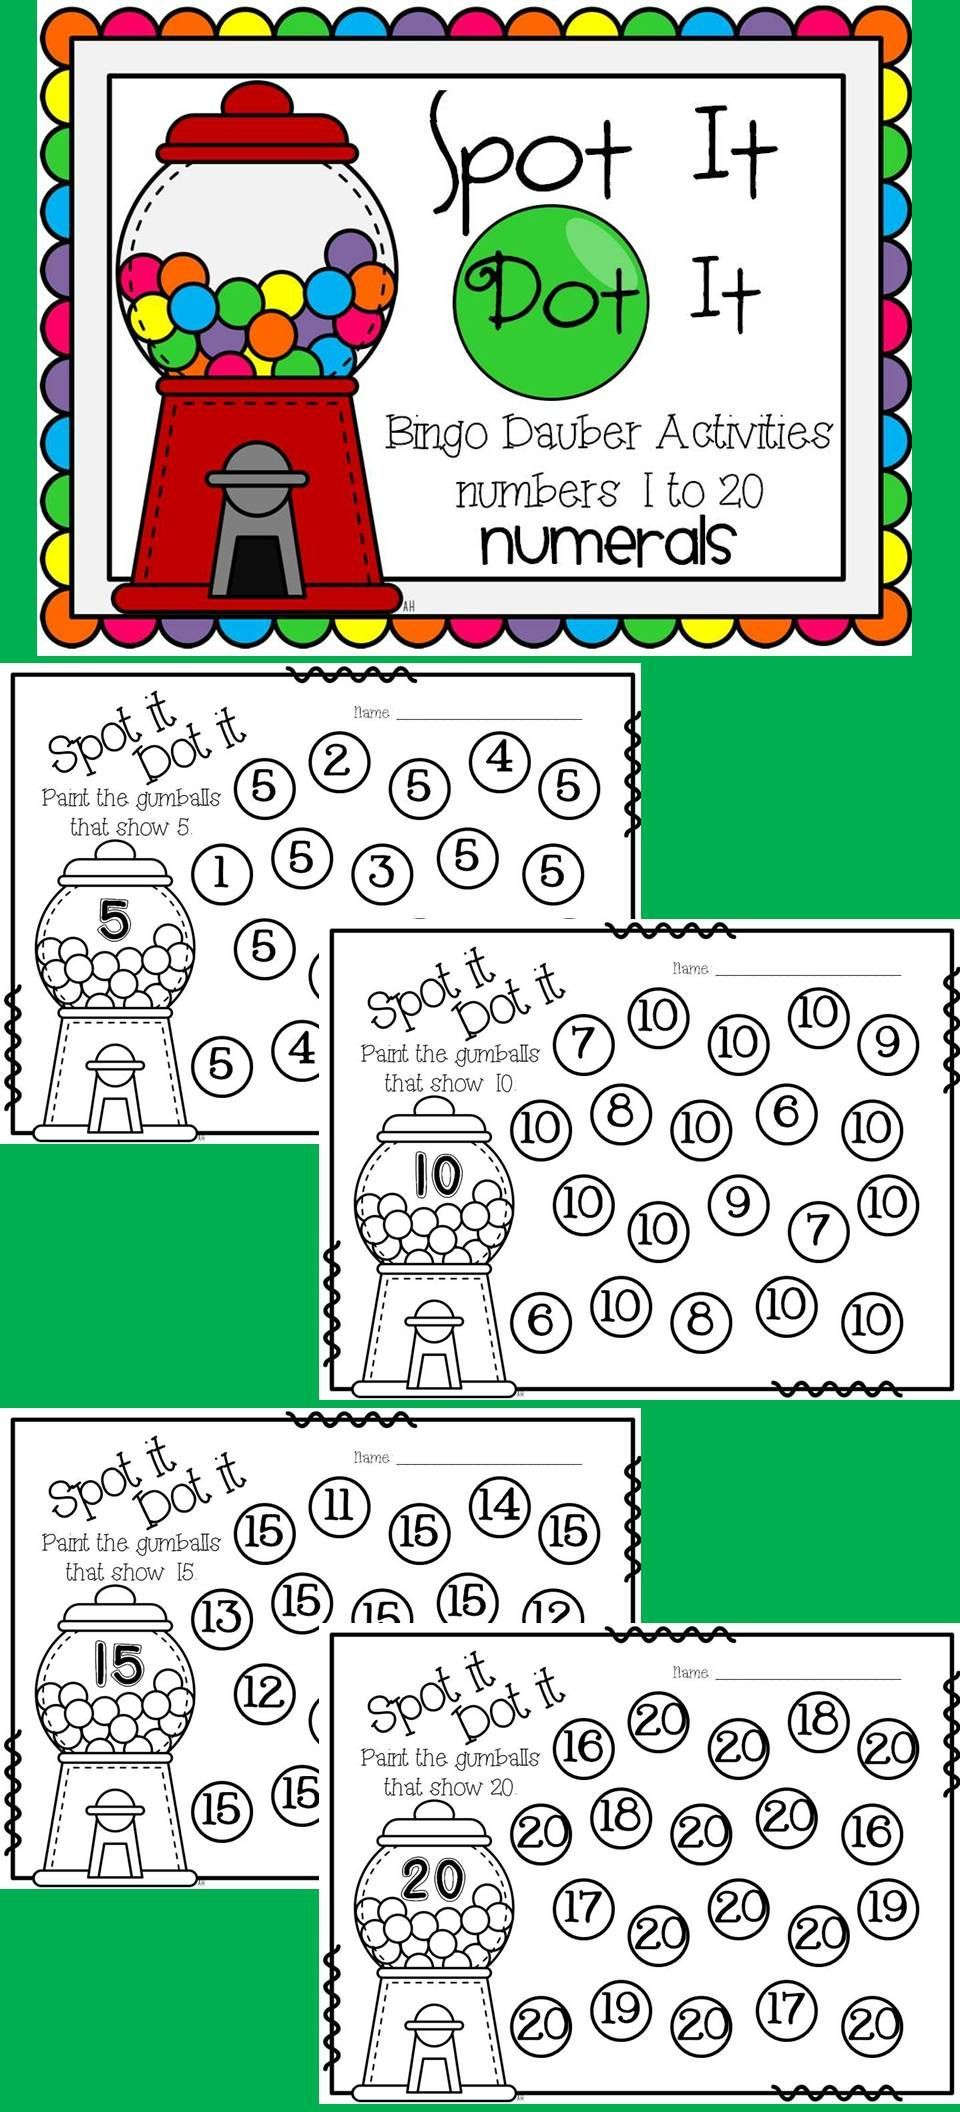 Spot It Dot It Bingo Dauber Printables for Numbers to 20